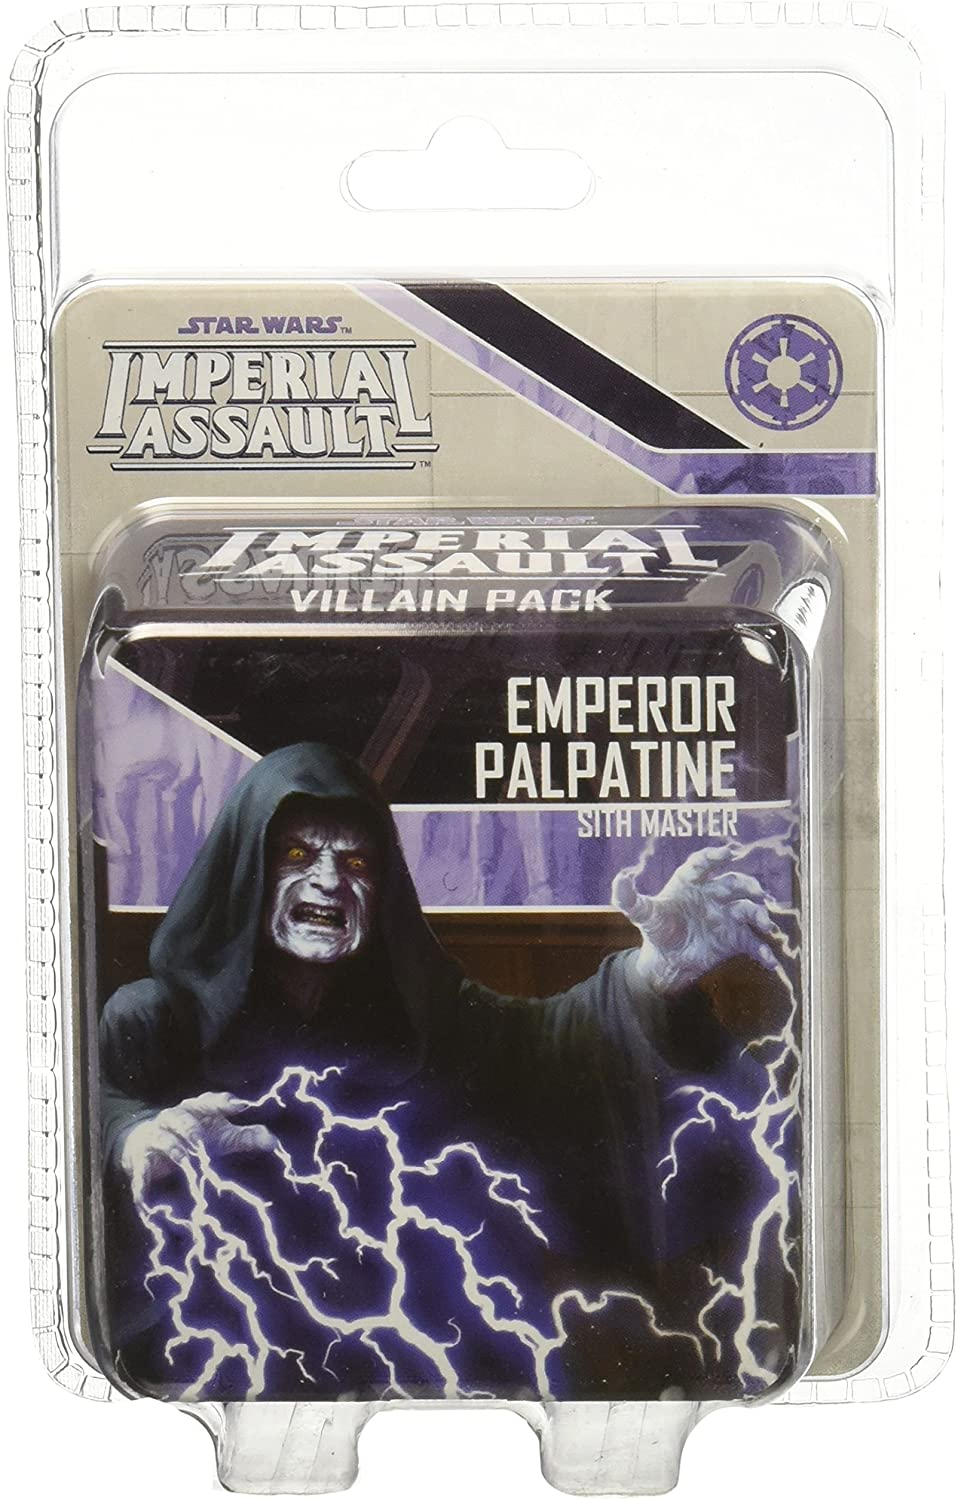 Star Wars: Imperial Assault - Imperial Assault Emperor Palpatine